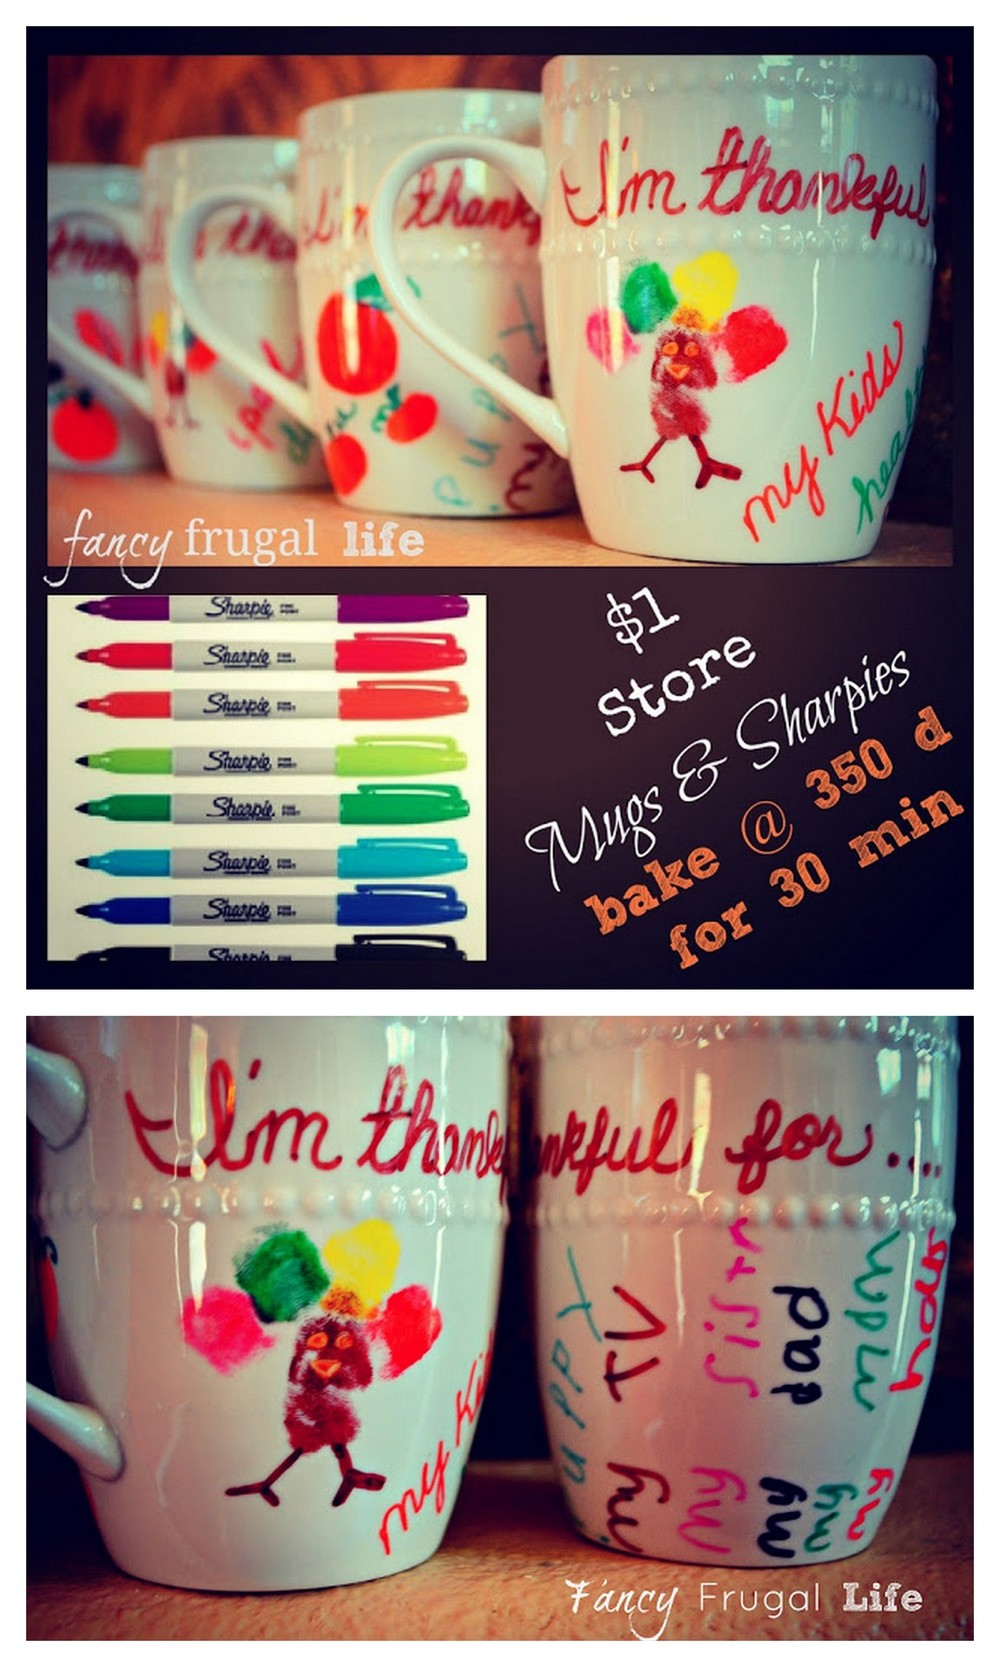 This DIY Thanksgiving Writeable Mug from the Fancy Frugal Life blog is not only great for children but adults as a fun way of sharing what you are most thankful for around the Thanksgiving Dinner Table. Enjoy and remember, Life Is Style, so How Do You Entertain? Subscribe to The Citrus Life Newsletter! rainbowsandunicornscrafts: DIY Sharpie Mugs Tutorial from Fancy Frugal Life here.I've seen tons of sharpie mug projects done to death, but I liked the idea of kids drawing designs on them (and yes, I'd be really careful and roll up their sleeves and put an art smock on them or something to keep permanent sharpies off their clothes!). Another reason I haven't posted the sharpie mugs is that you should only hand wash them (a pain) but I figured that the mugs could also be used as pencil/pen holders too.